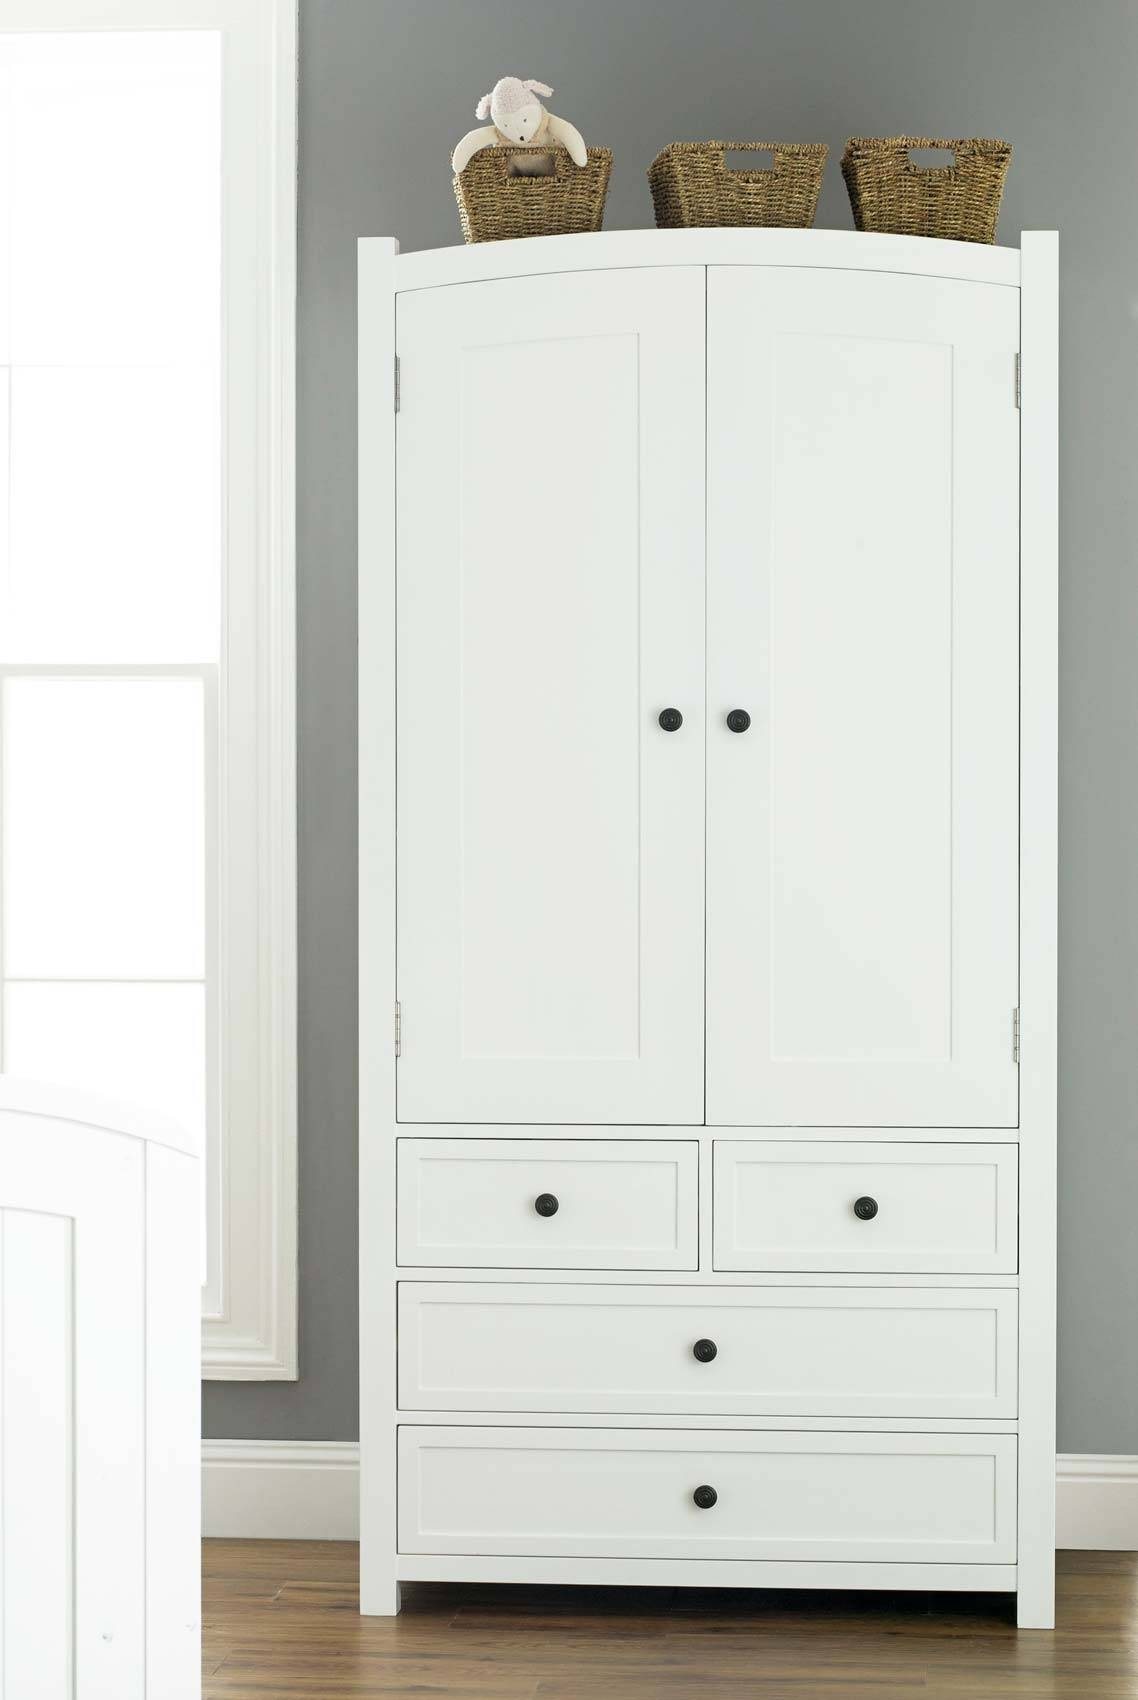 Flawless White Wooden Kids Wardrobe With Drawers And Brown Wicker Regarding Wardrobe With Drawers And Shelves (View 17 of 30)